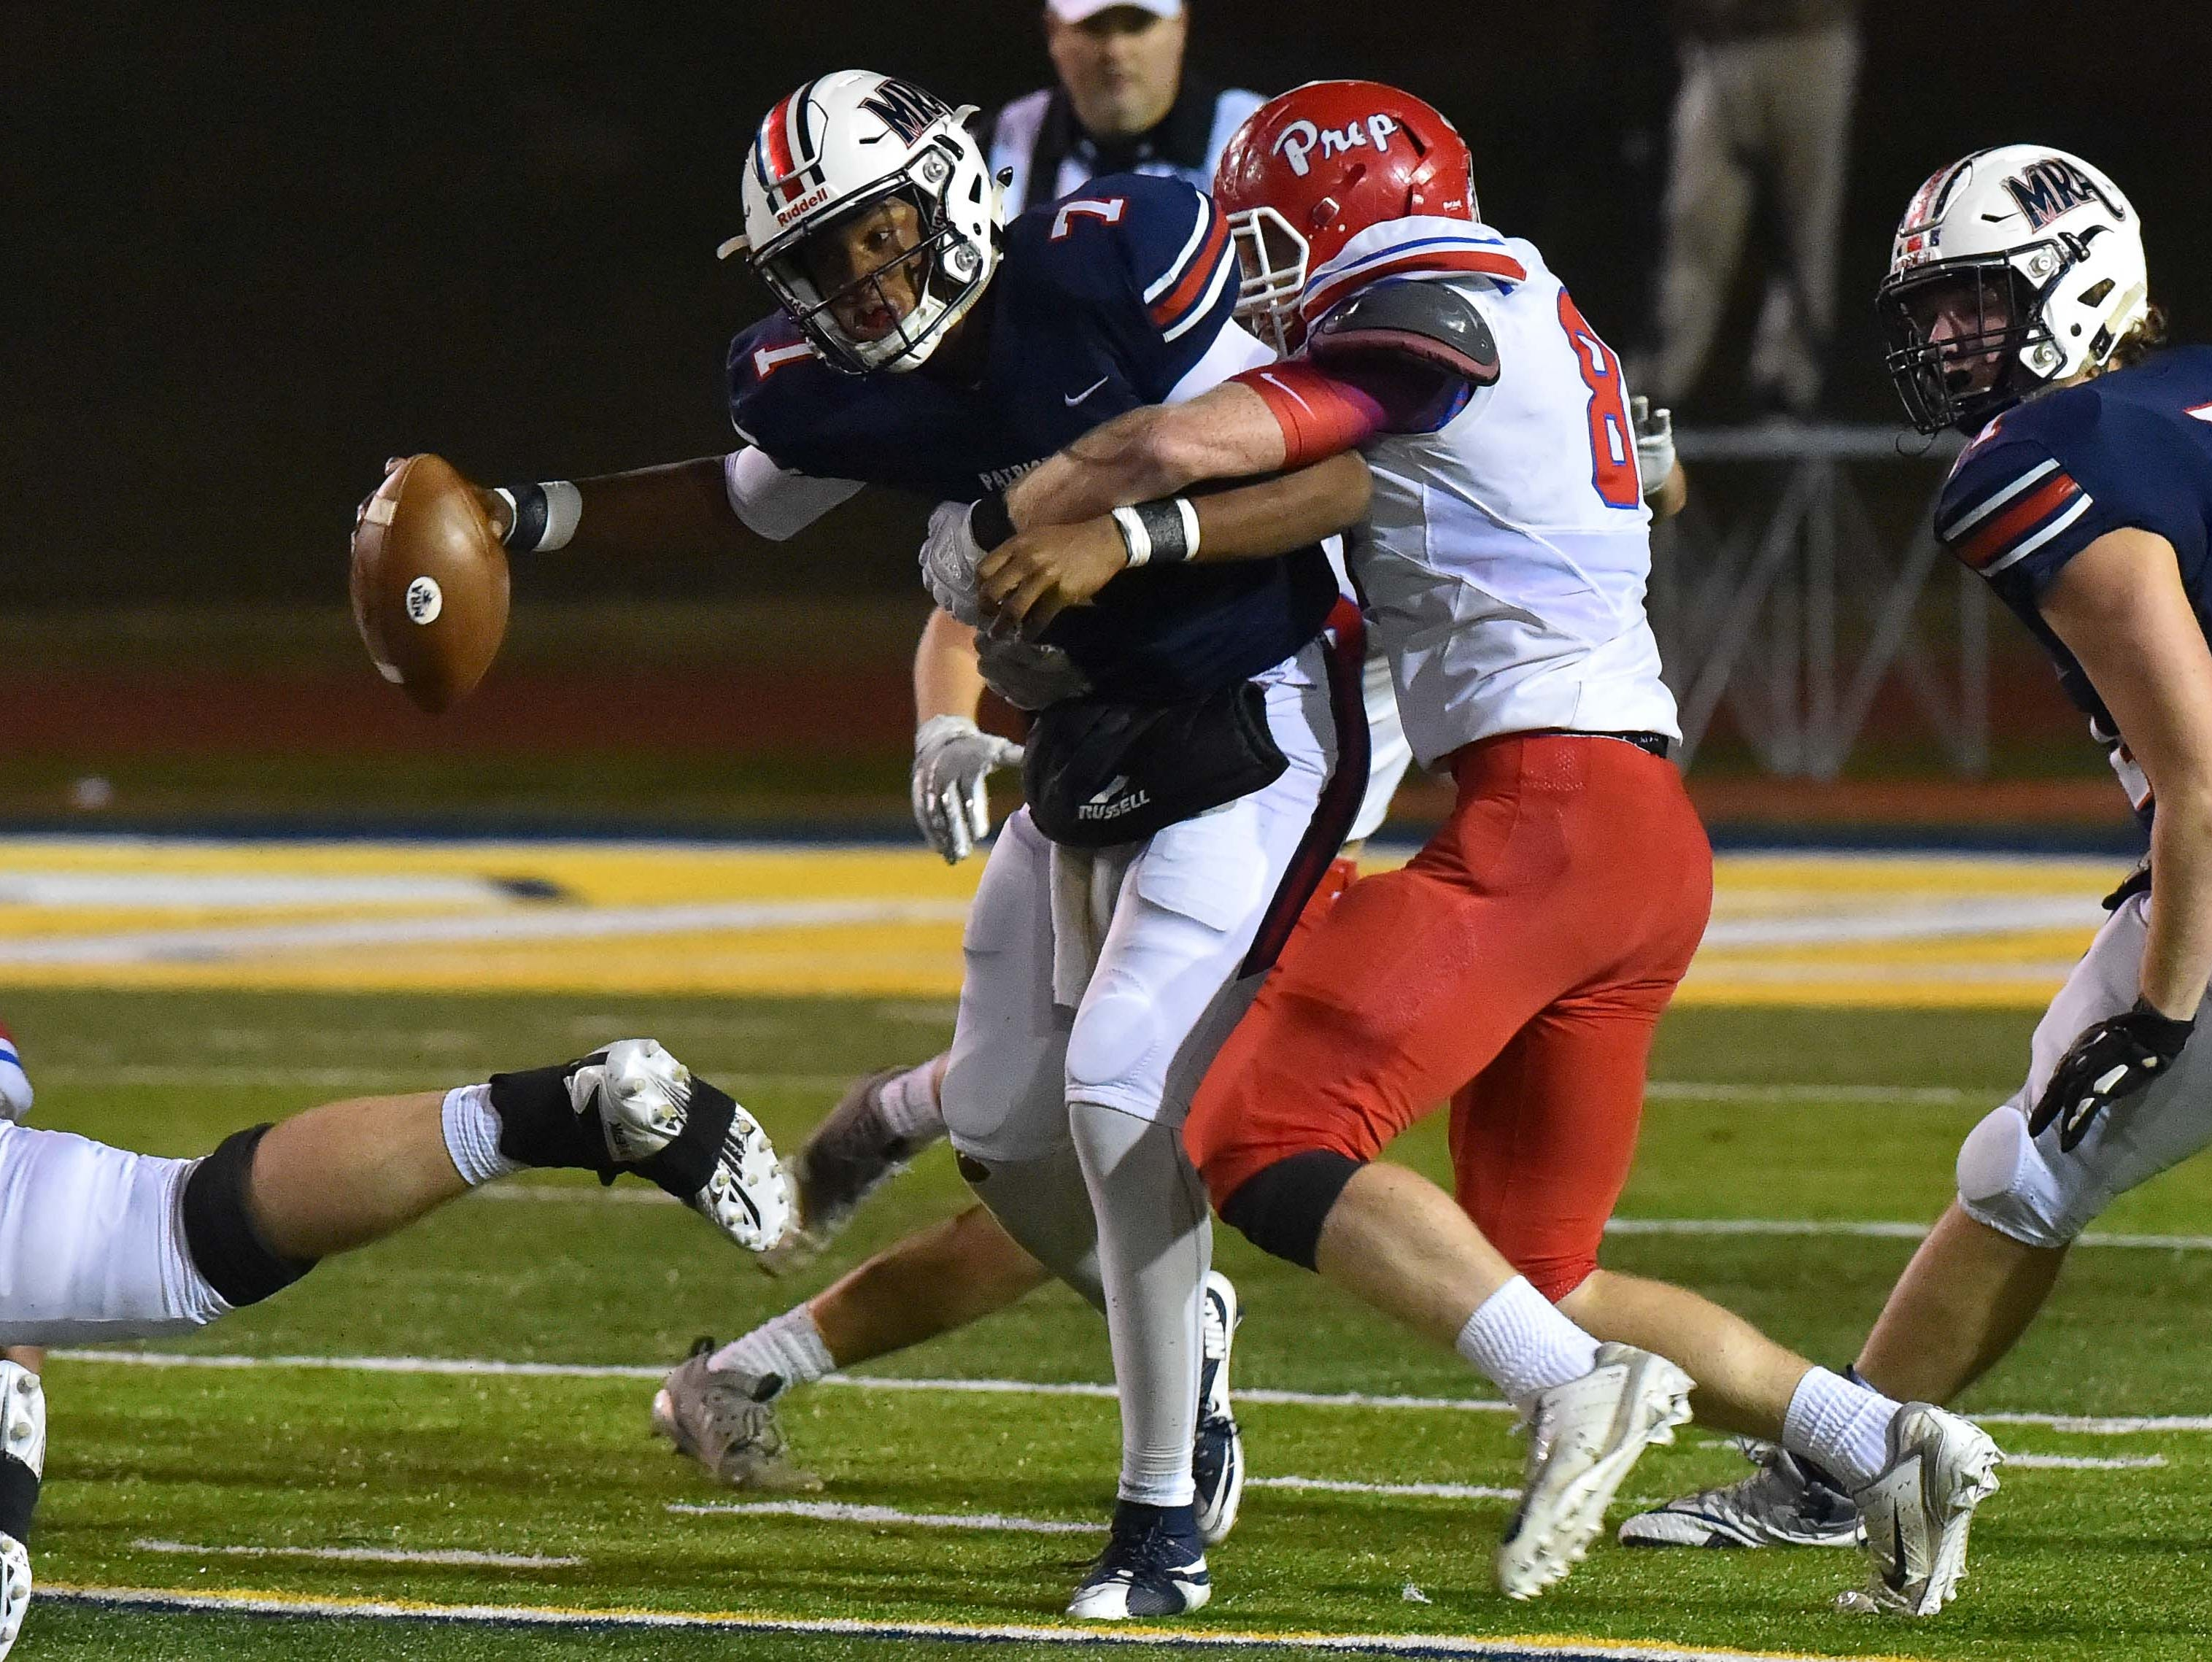 Madison Ridgeland Academy quarterback Phillip Short (7) is sacked by Jackson Prep during the MAIS Class AAAA Championship Football game held at Jackson Academy in Jackson, MS, Thursday November 16, 2018.(Bob Smith-For The Clarion Ledger)